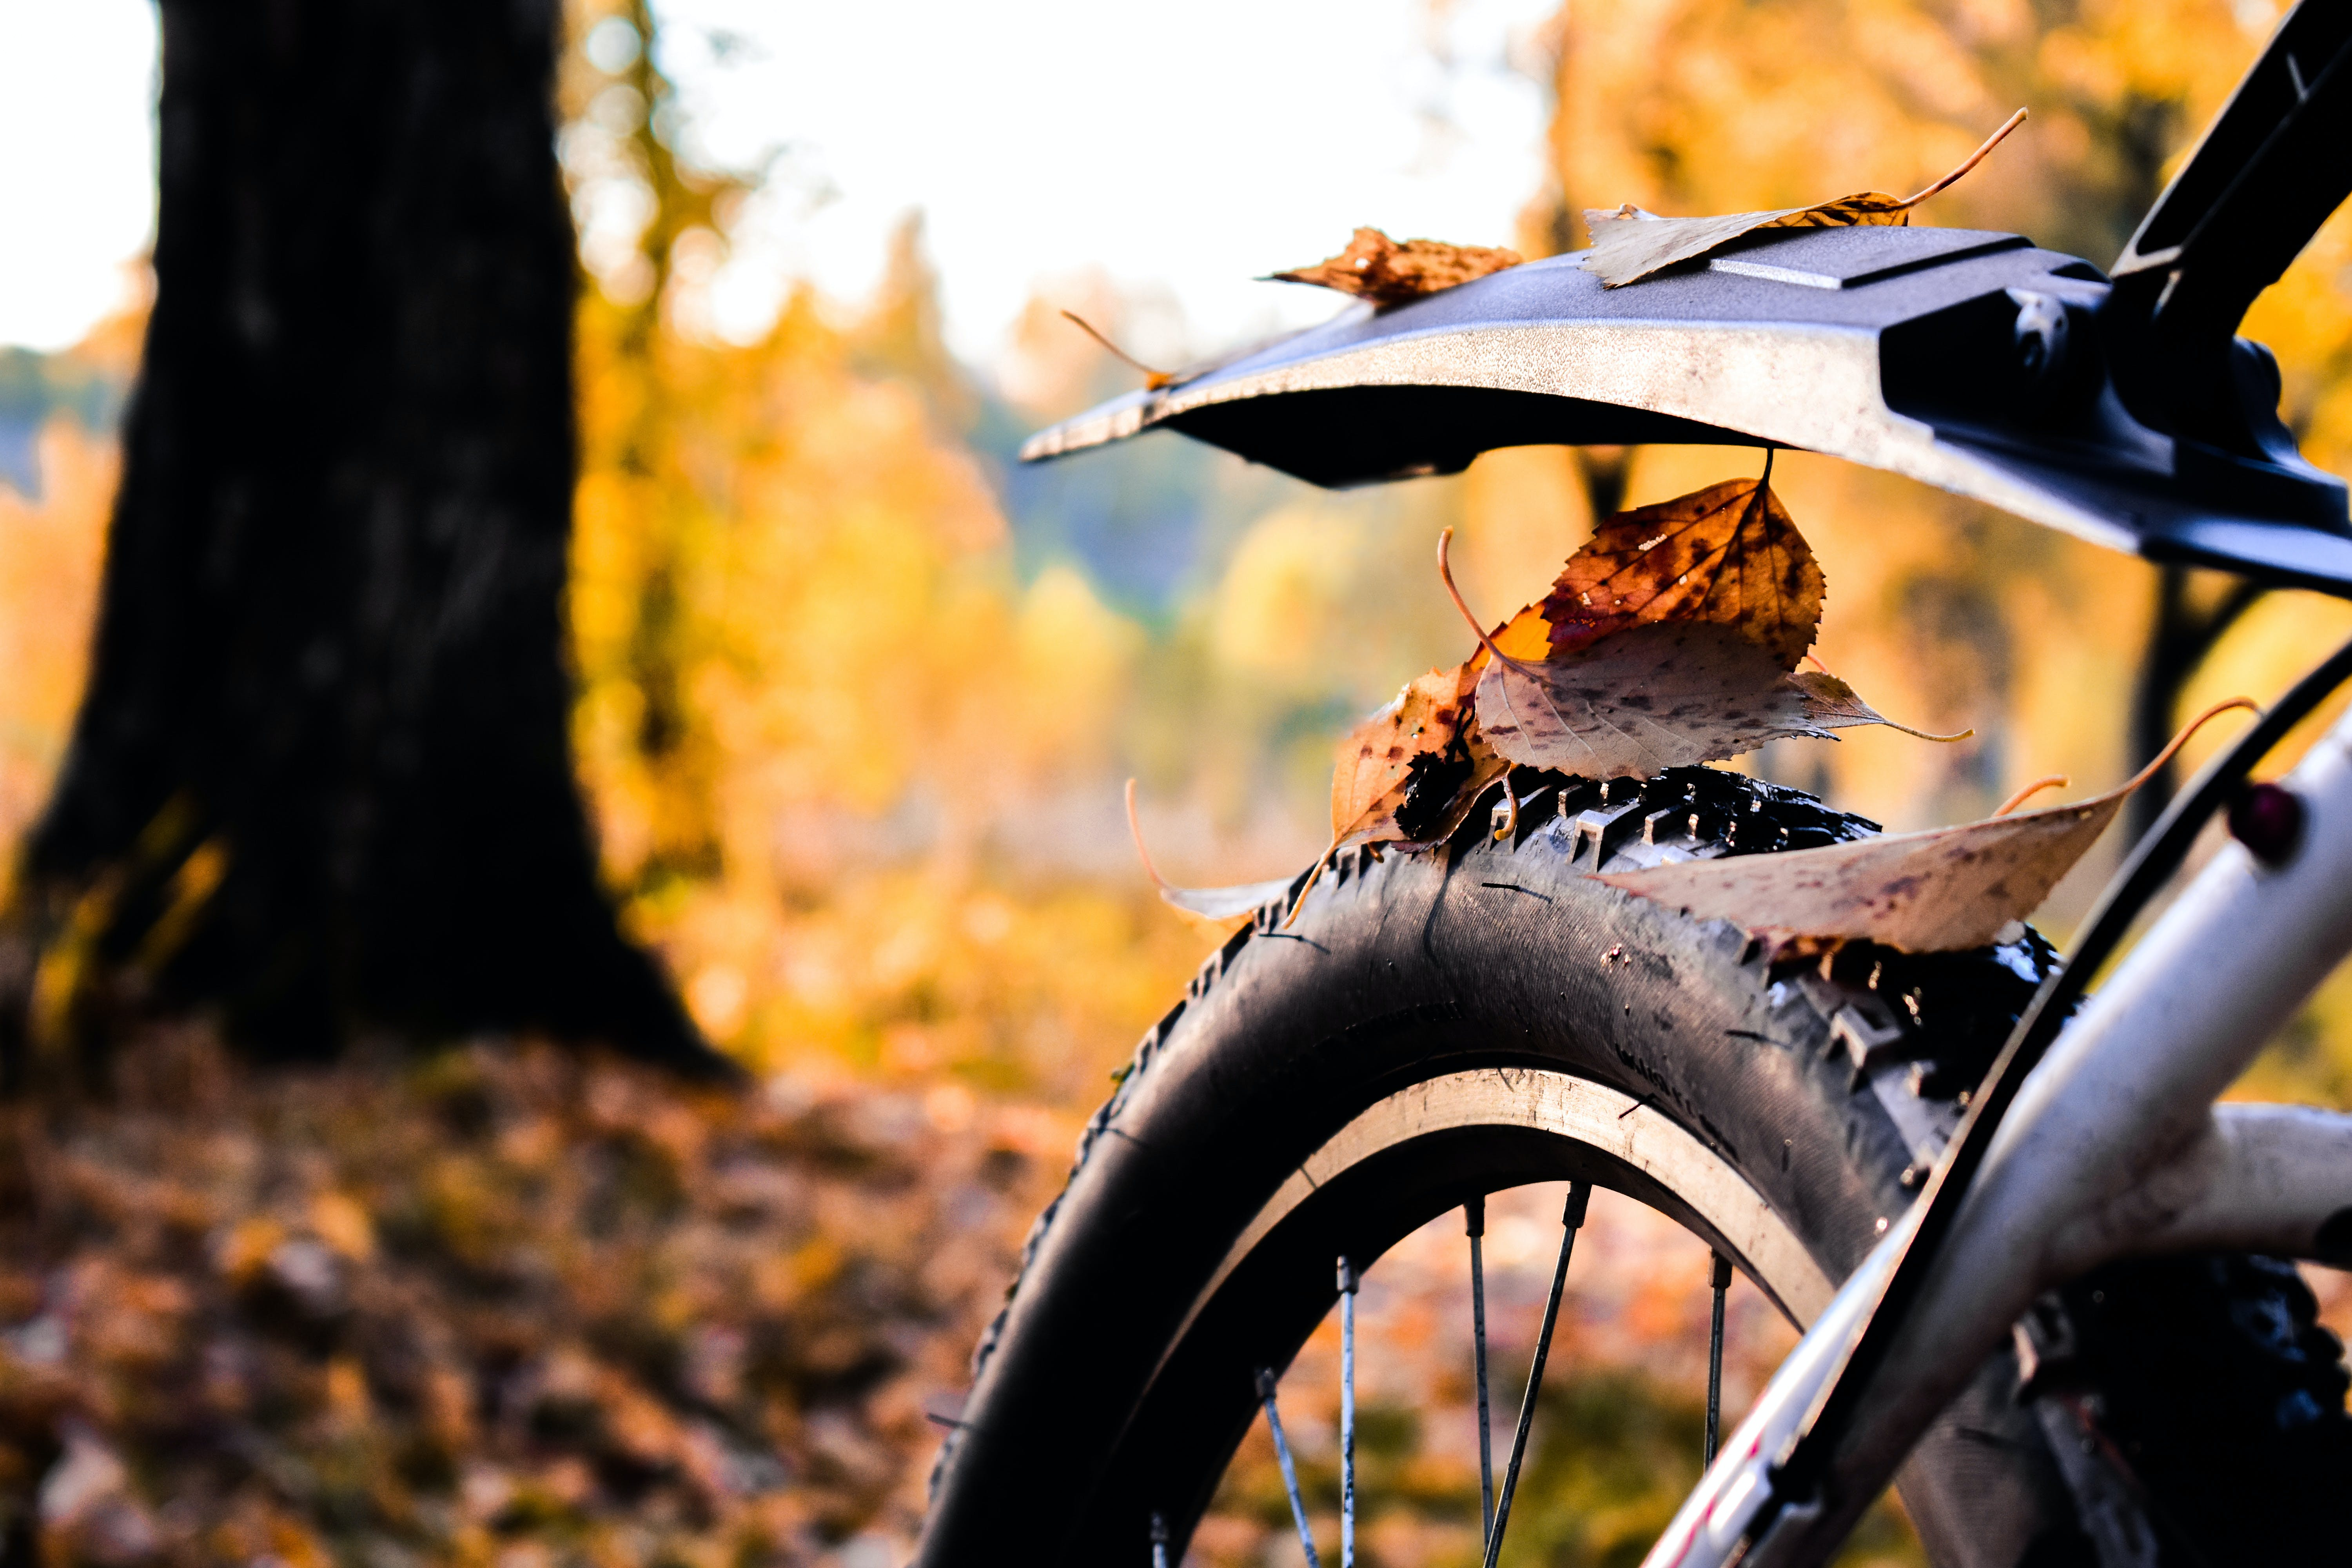 Dry Leaves On Bicycle's Tire